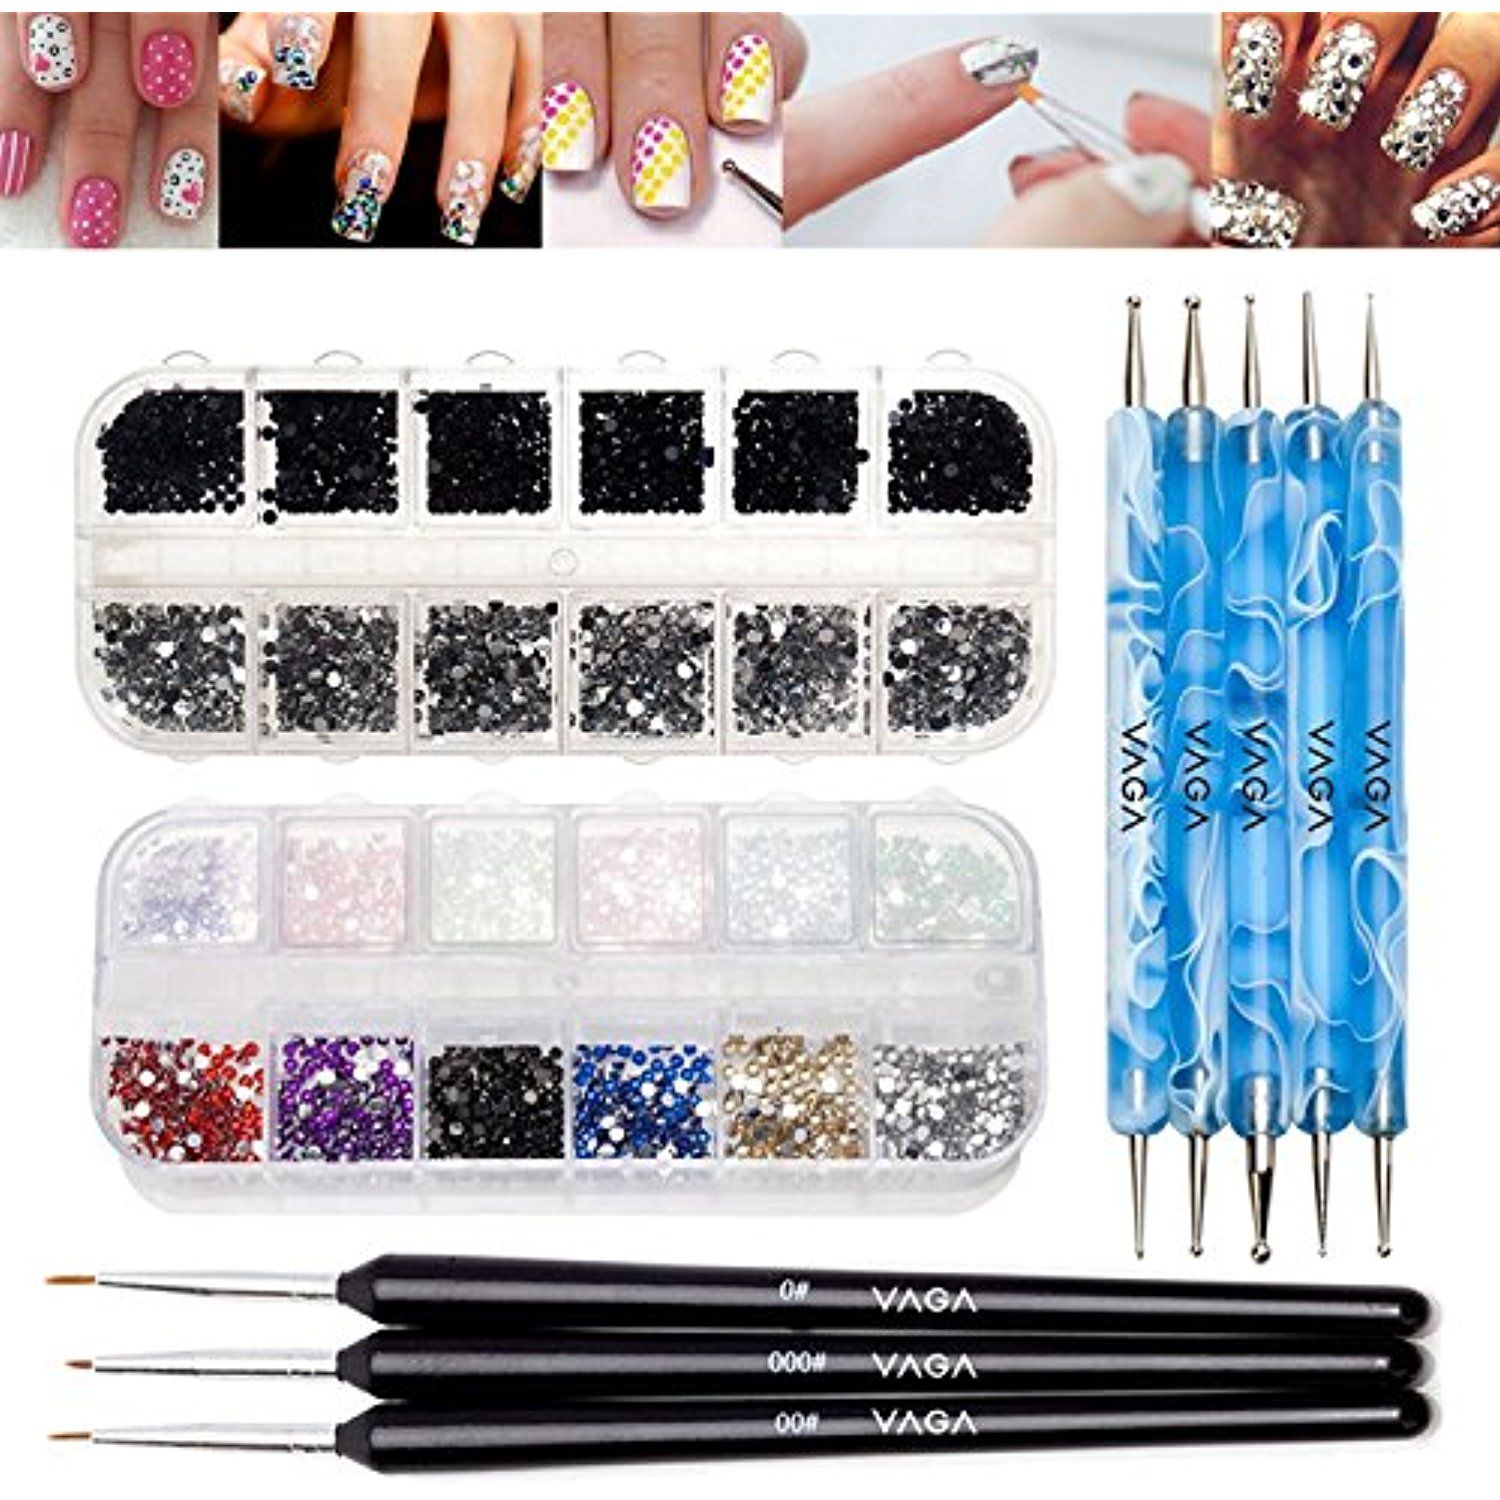 Complete Best Quality Professional Nail Art Accessories Set Kit With ...